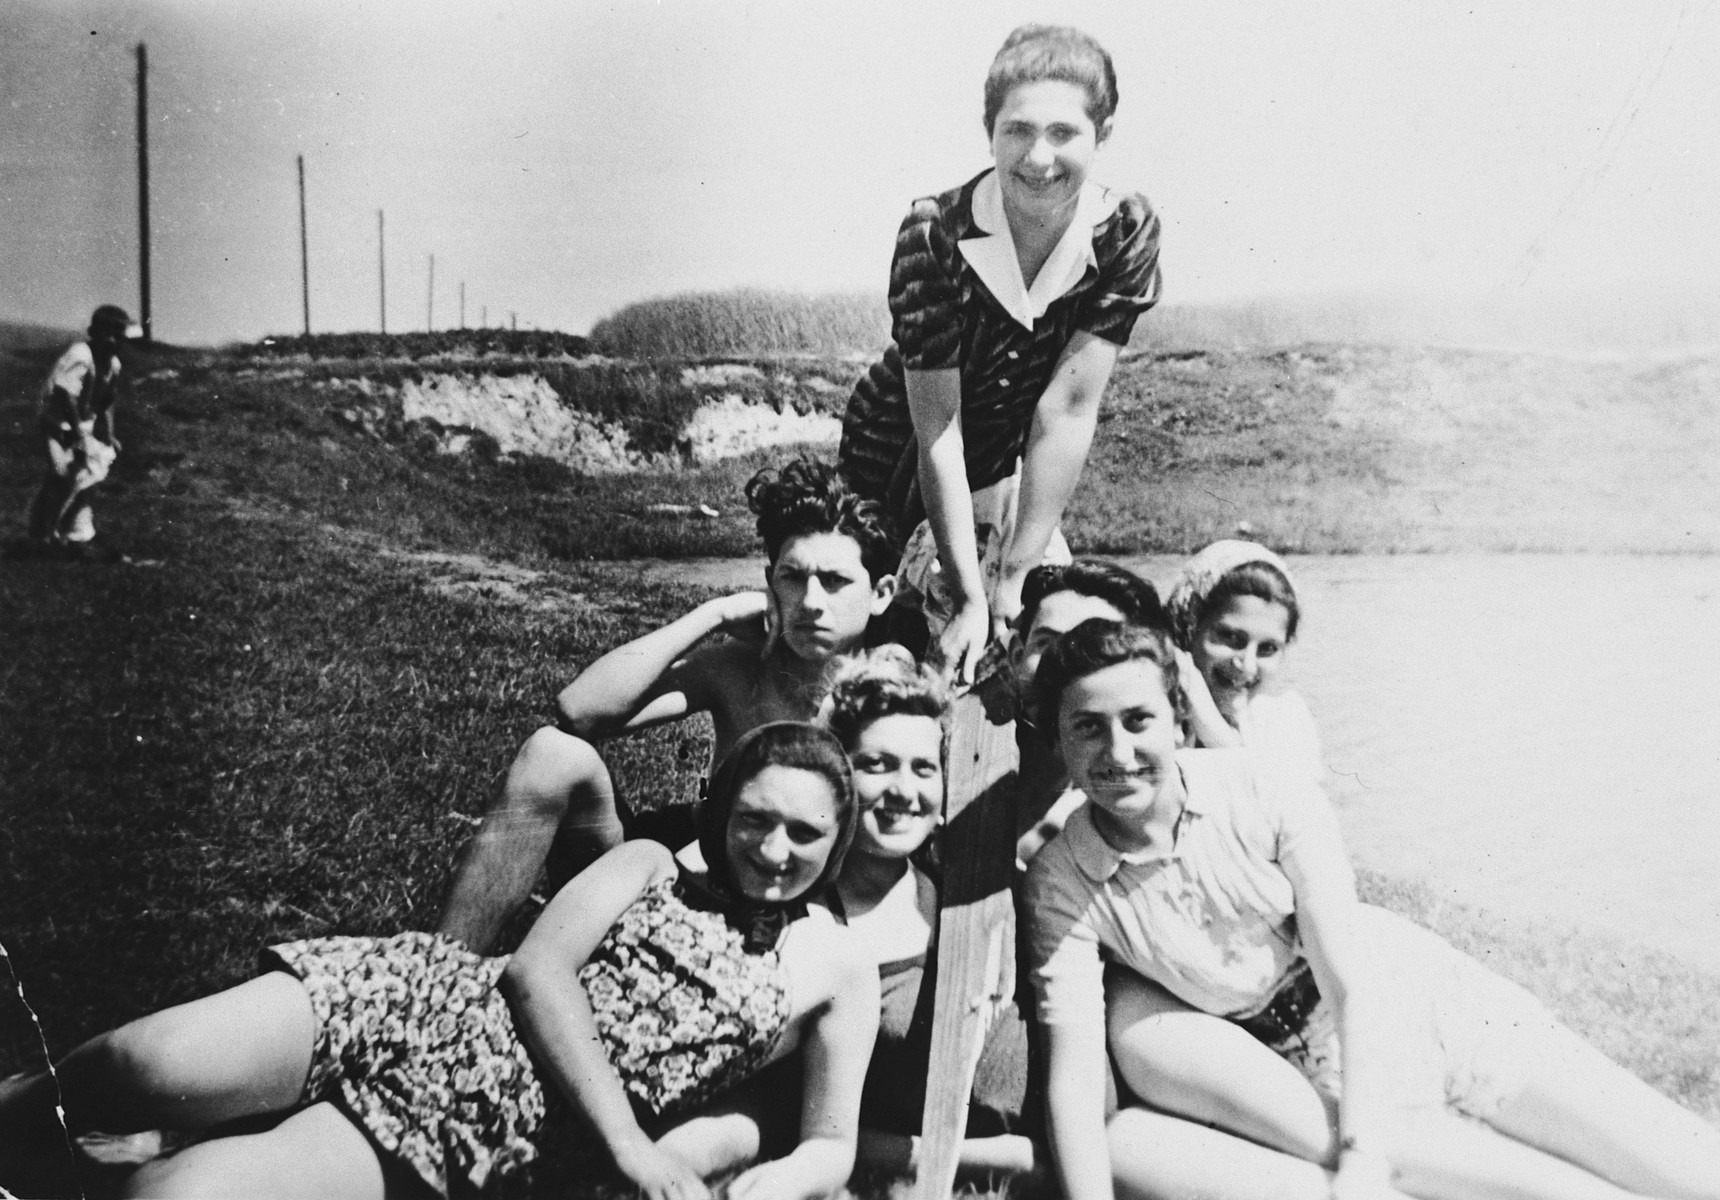 A group of teenagers pose in their bathing suits during a celebration in the Bedzin ghetto to mark their high school graduation.  All had been students in the Furstenberg gymnasium, and they continued their studies clandestinely after the school was forced to close.  Pictured from left to right are (front row) Genia Prawer, Mirka Szenfeld, and Duda Rynska;   (middle row) Bobo Graubart, Heniek Lewin, and Hanka Lewin;  (standing) Ruta Rudoler.